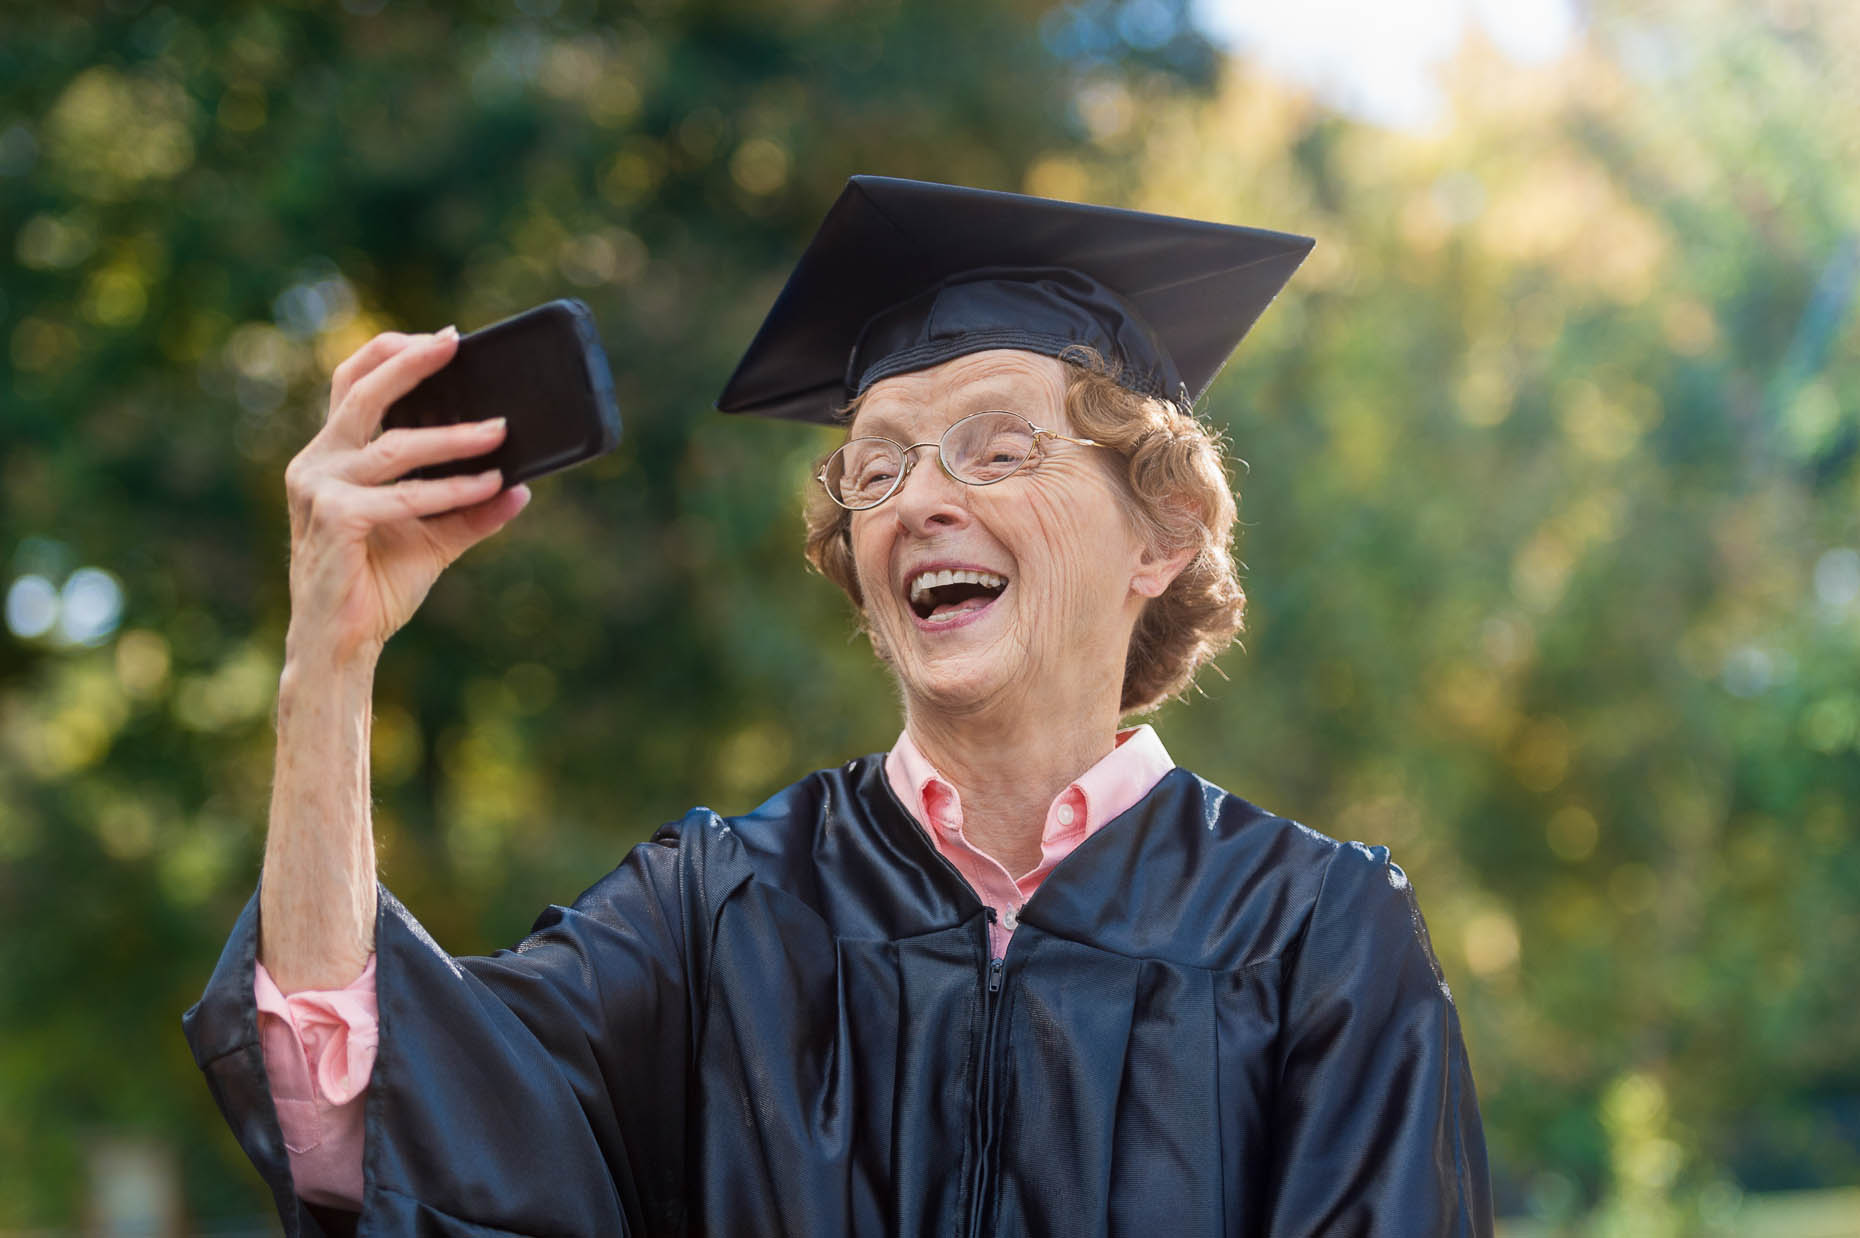 Elderly-woman-taking-graduation-selfie